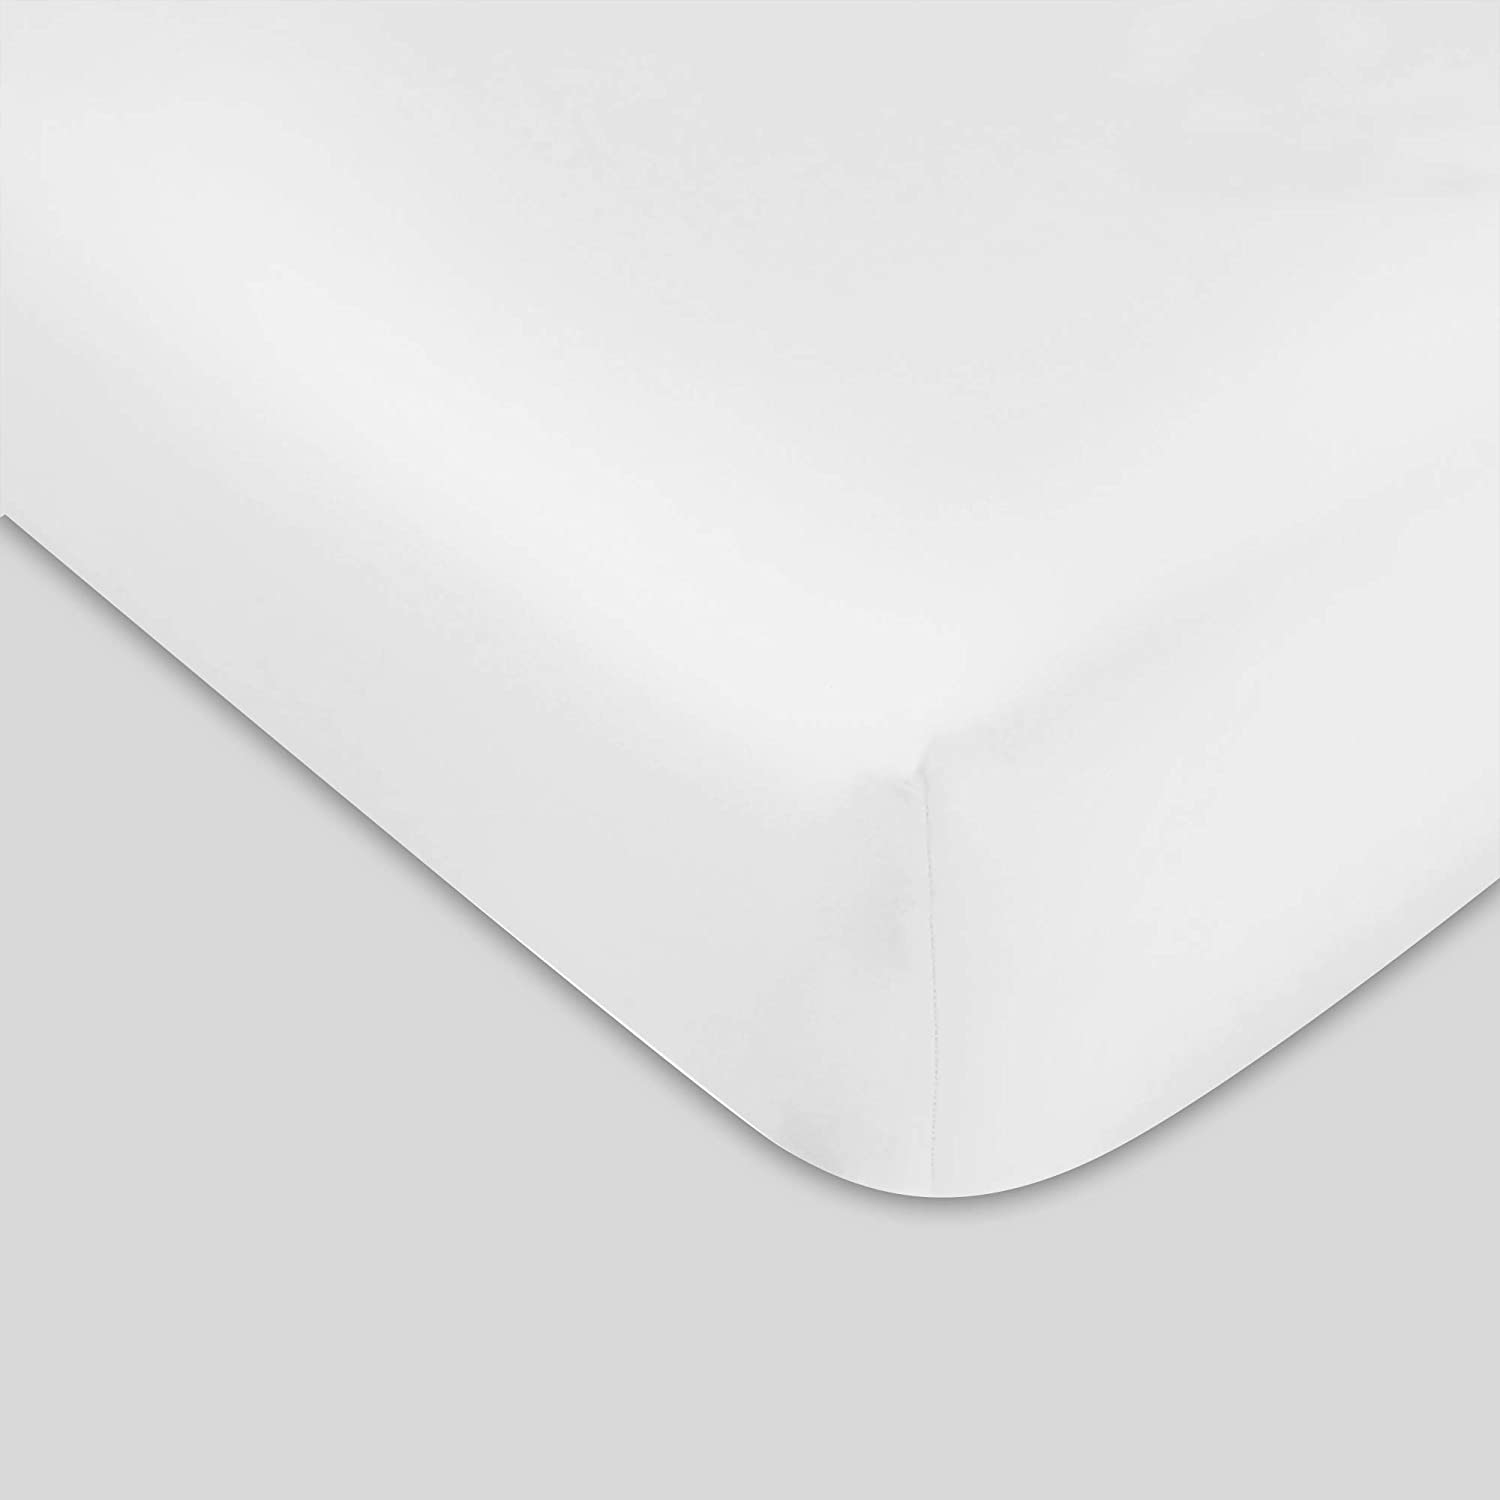 """300 TC GOTS Certified 100% Organic Cotton Queen Sateen Weave Fitted Sheet - Fits Mattress Up to 16"""" Deep Pocket - Supremely Soft & Shiny Close to Nature Biodegradable Sheet - White - Queen Fitted"""